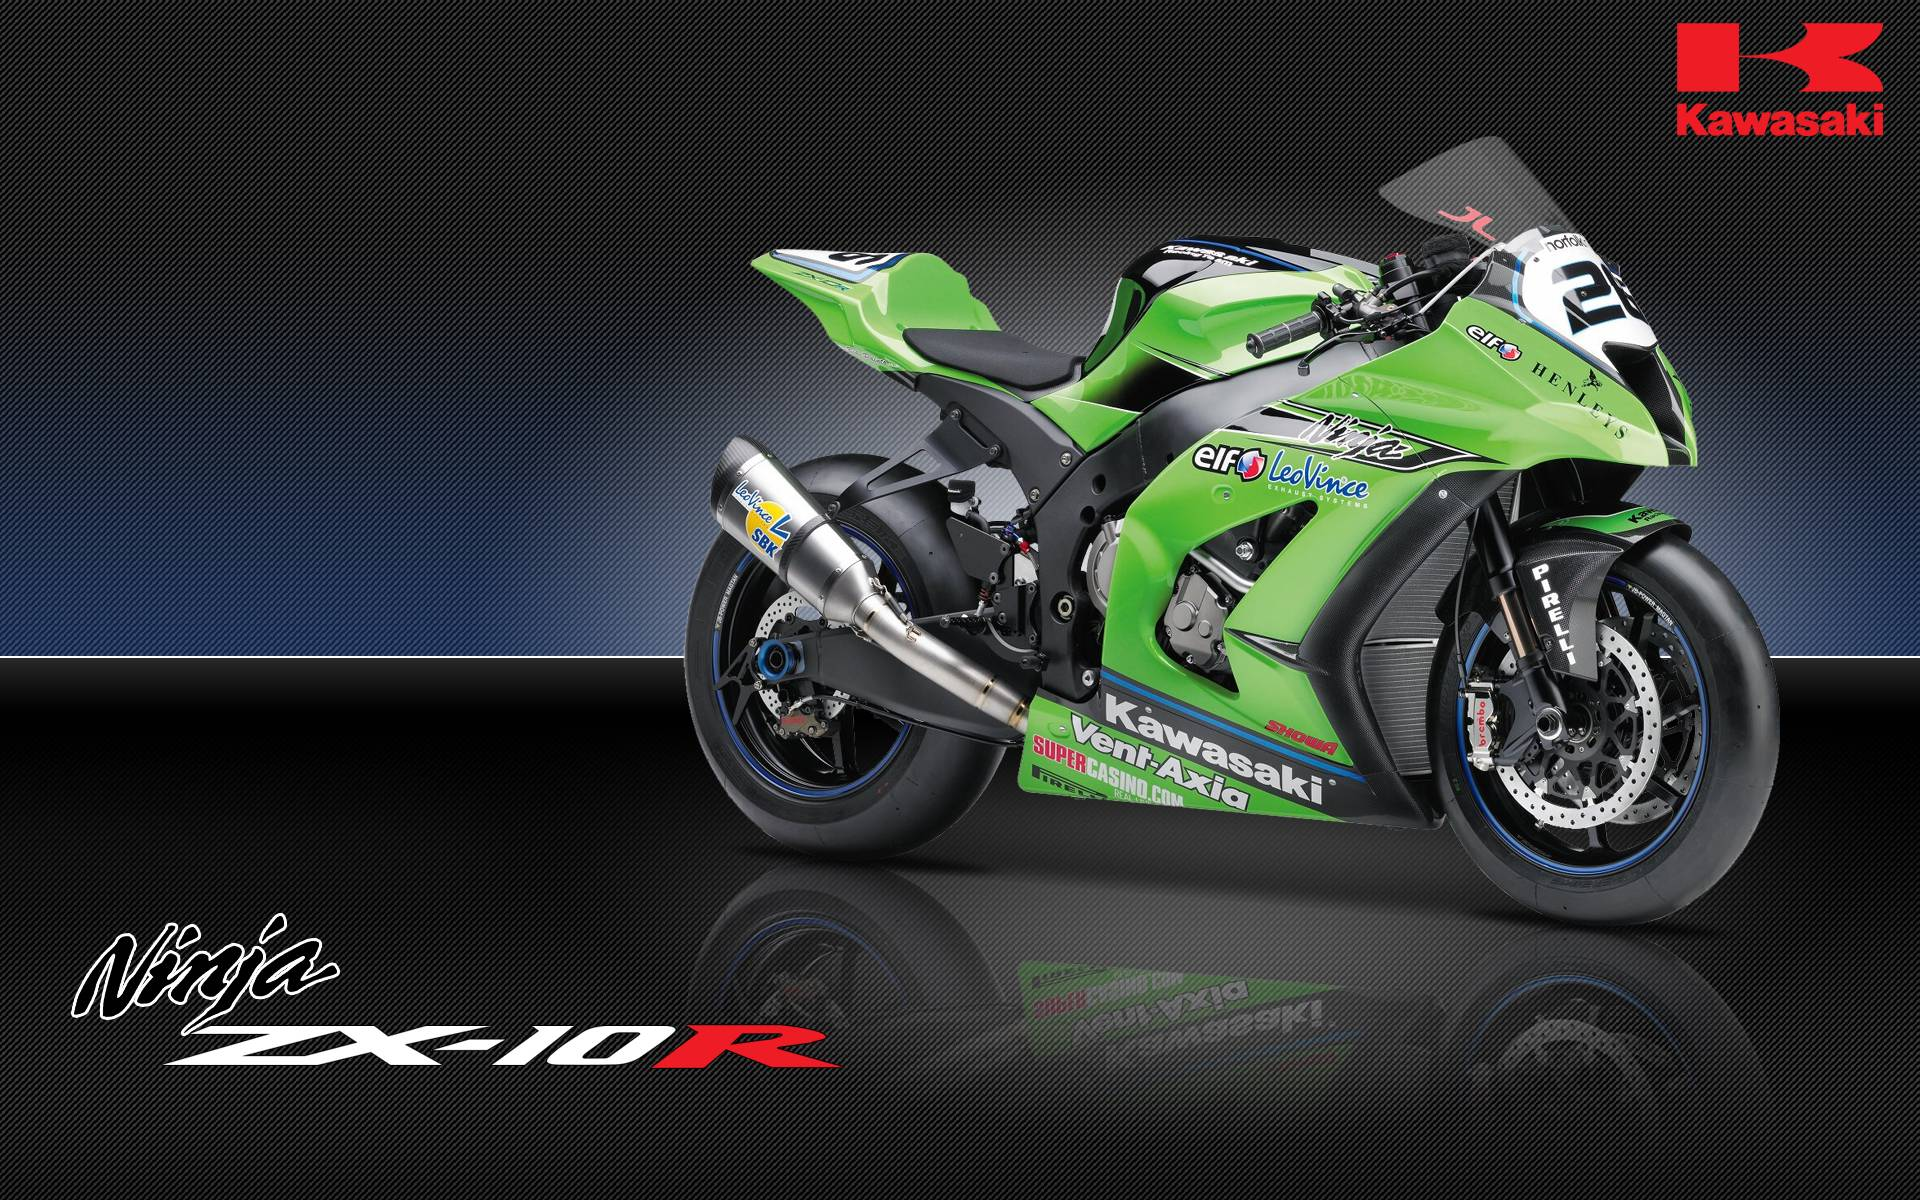 Kawasaki Ninja Bike HD Wallpapers